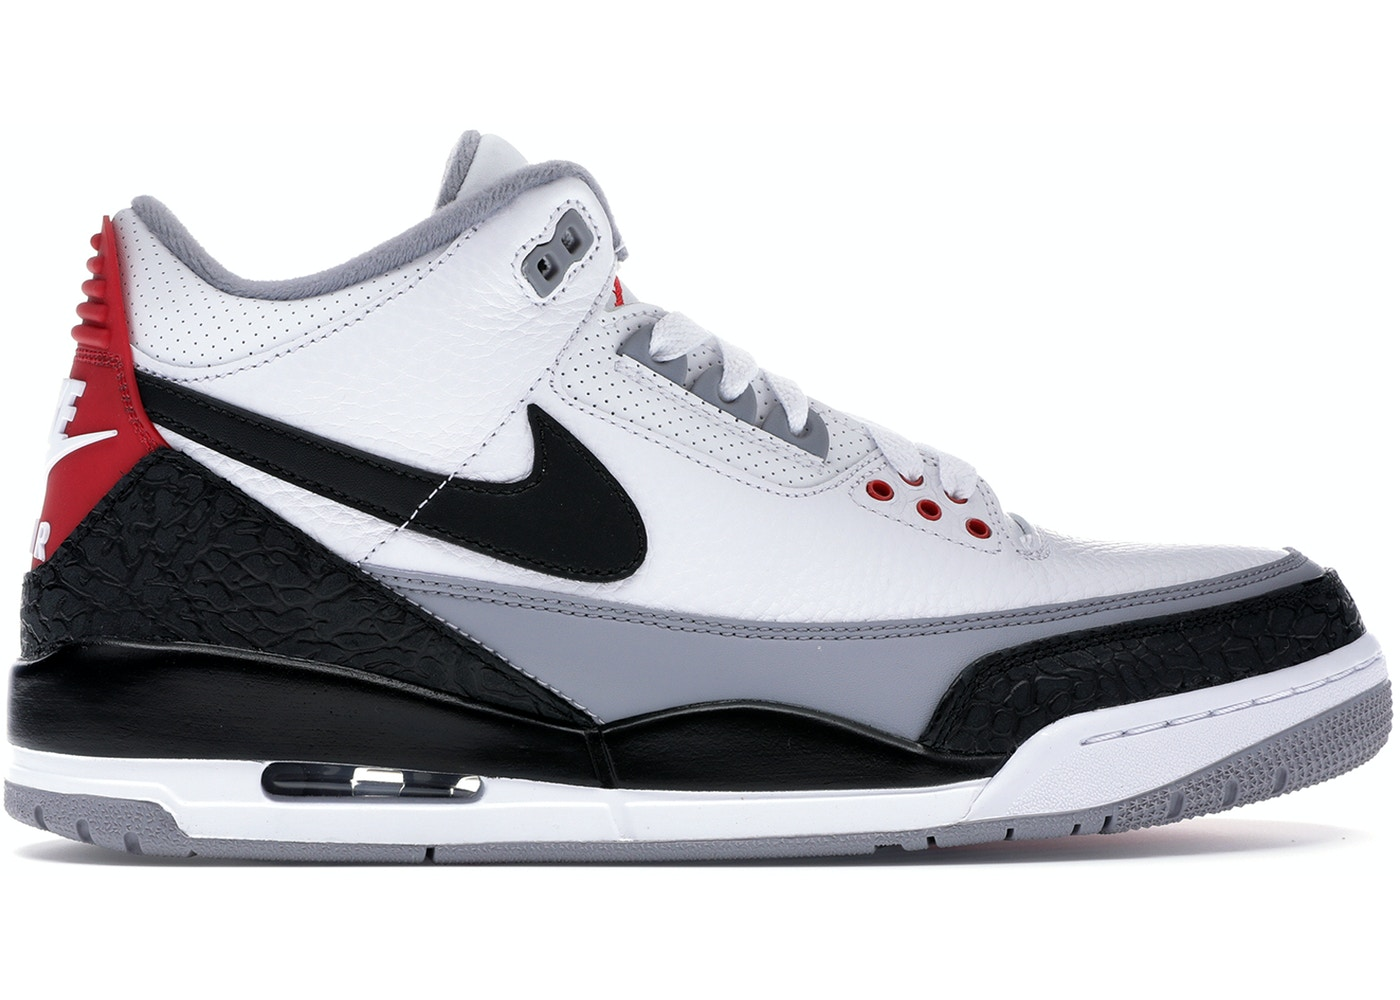 outlet store 50d48 a6e46 Buy Air Jordan 3 Shoes & Deadstock Sneakers